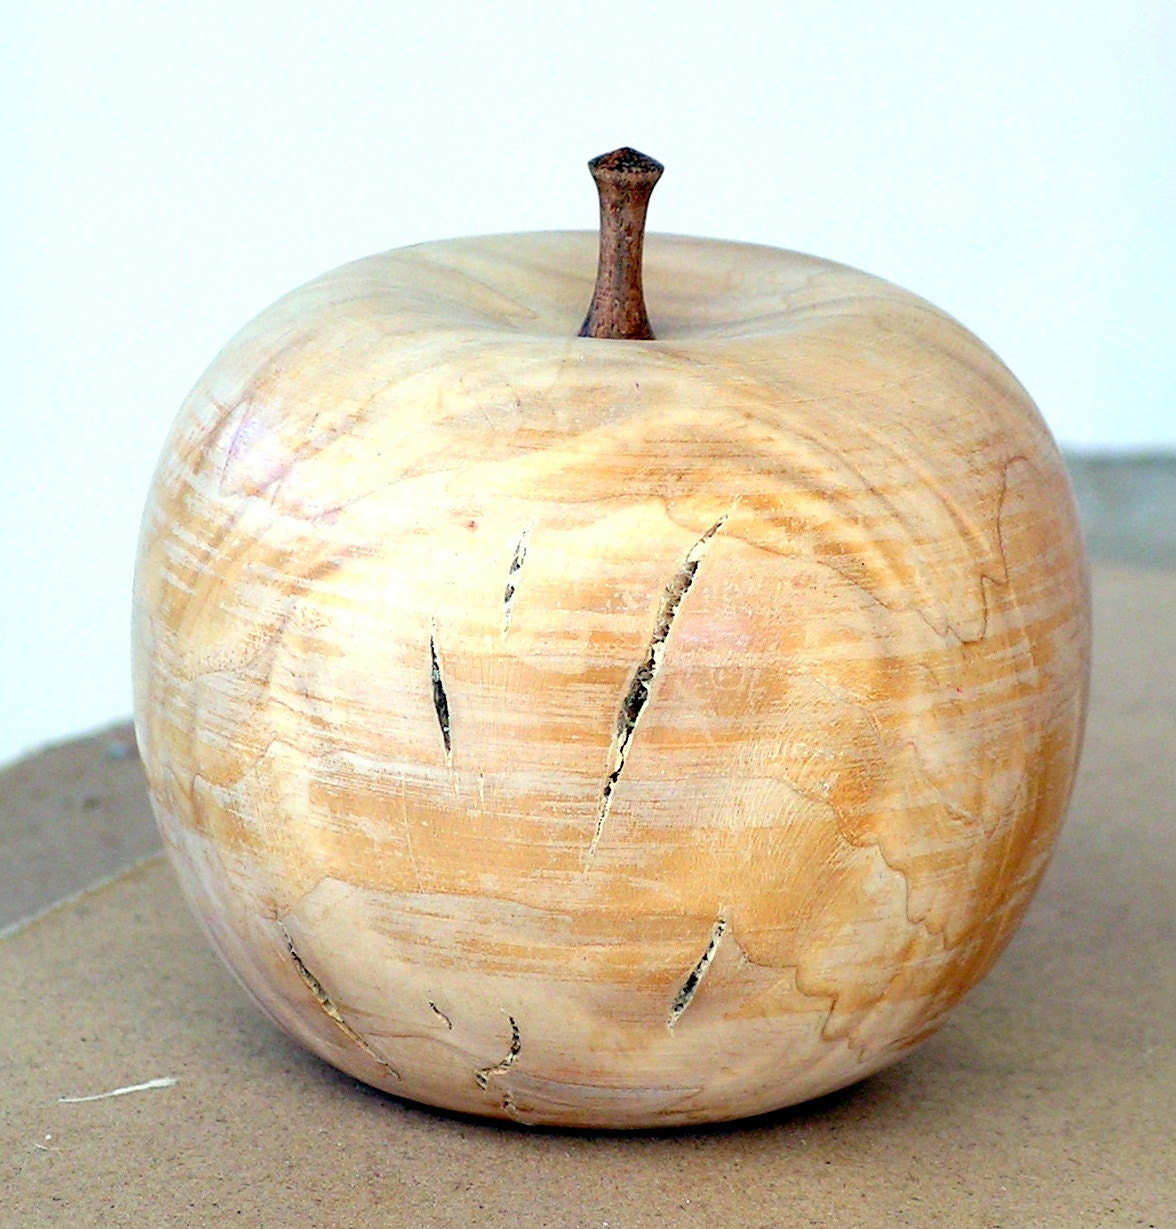 Wood turned apple carved wooden fruit rustic by retrosideshow